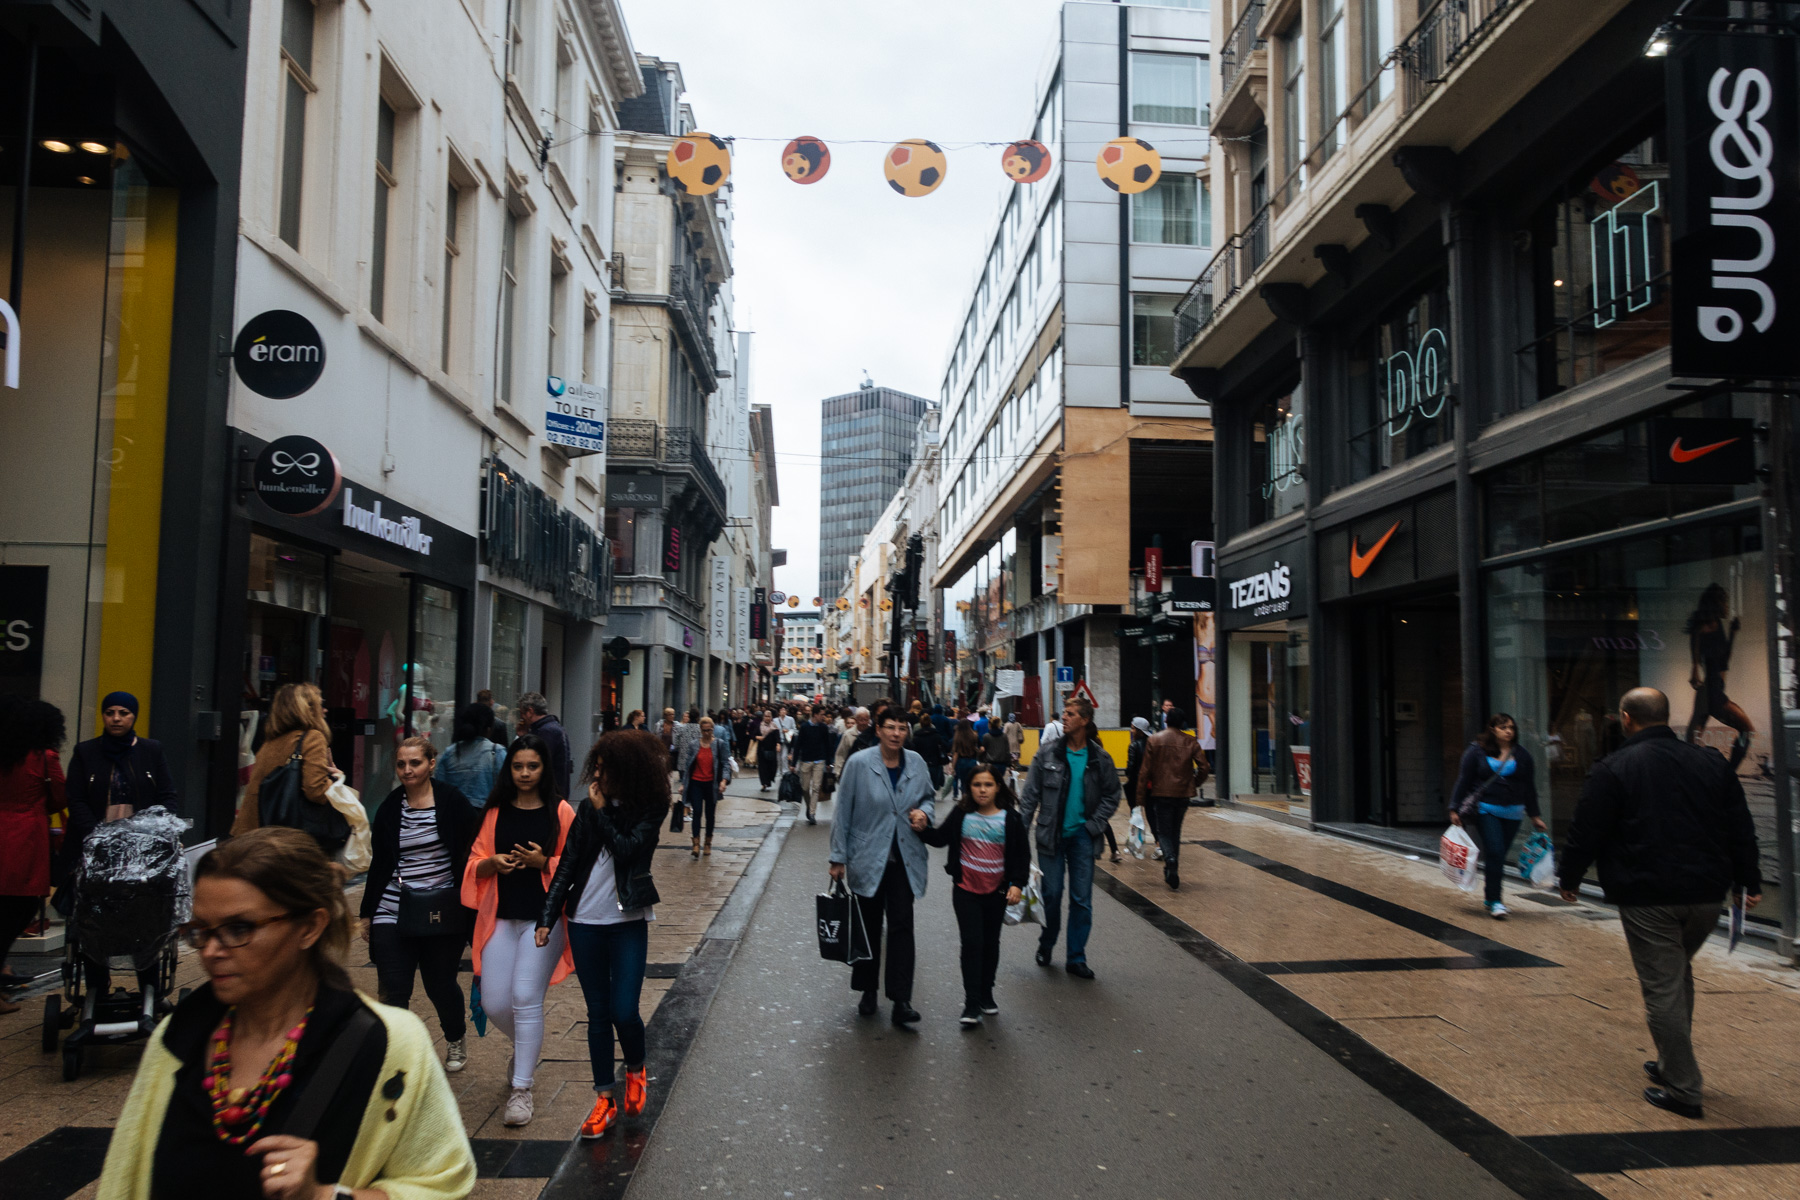 Shopping district in Brussels. ALWAYS crowded.